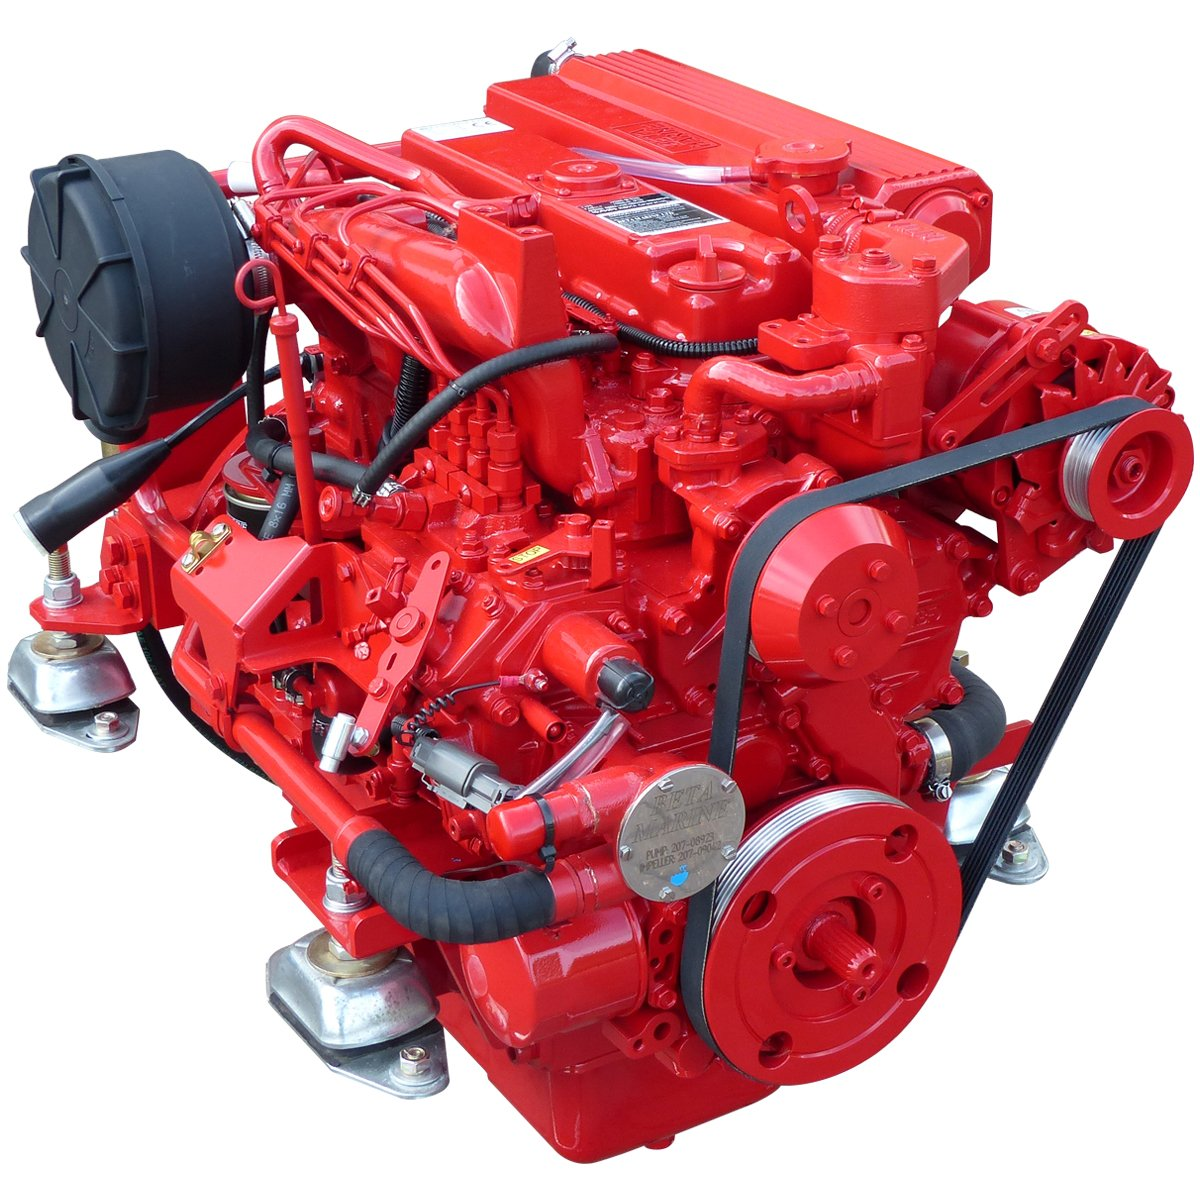 Beta Marine USA - marine diesel propulsion engines - Beta 60 heat exchanger engine